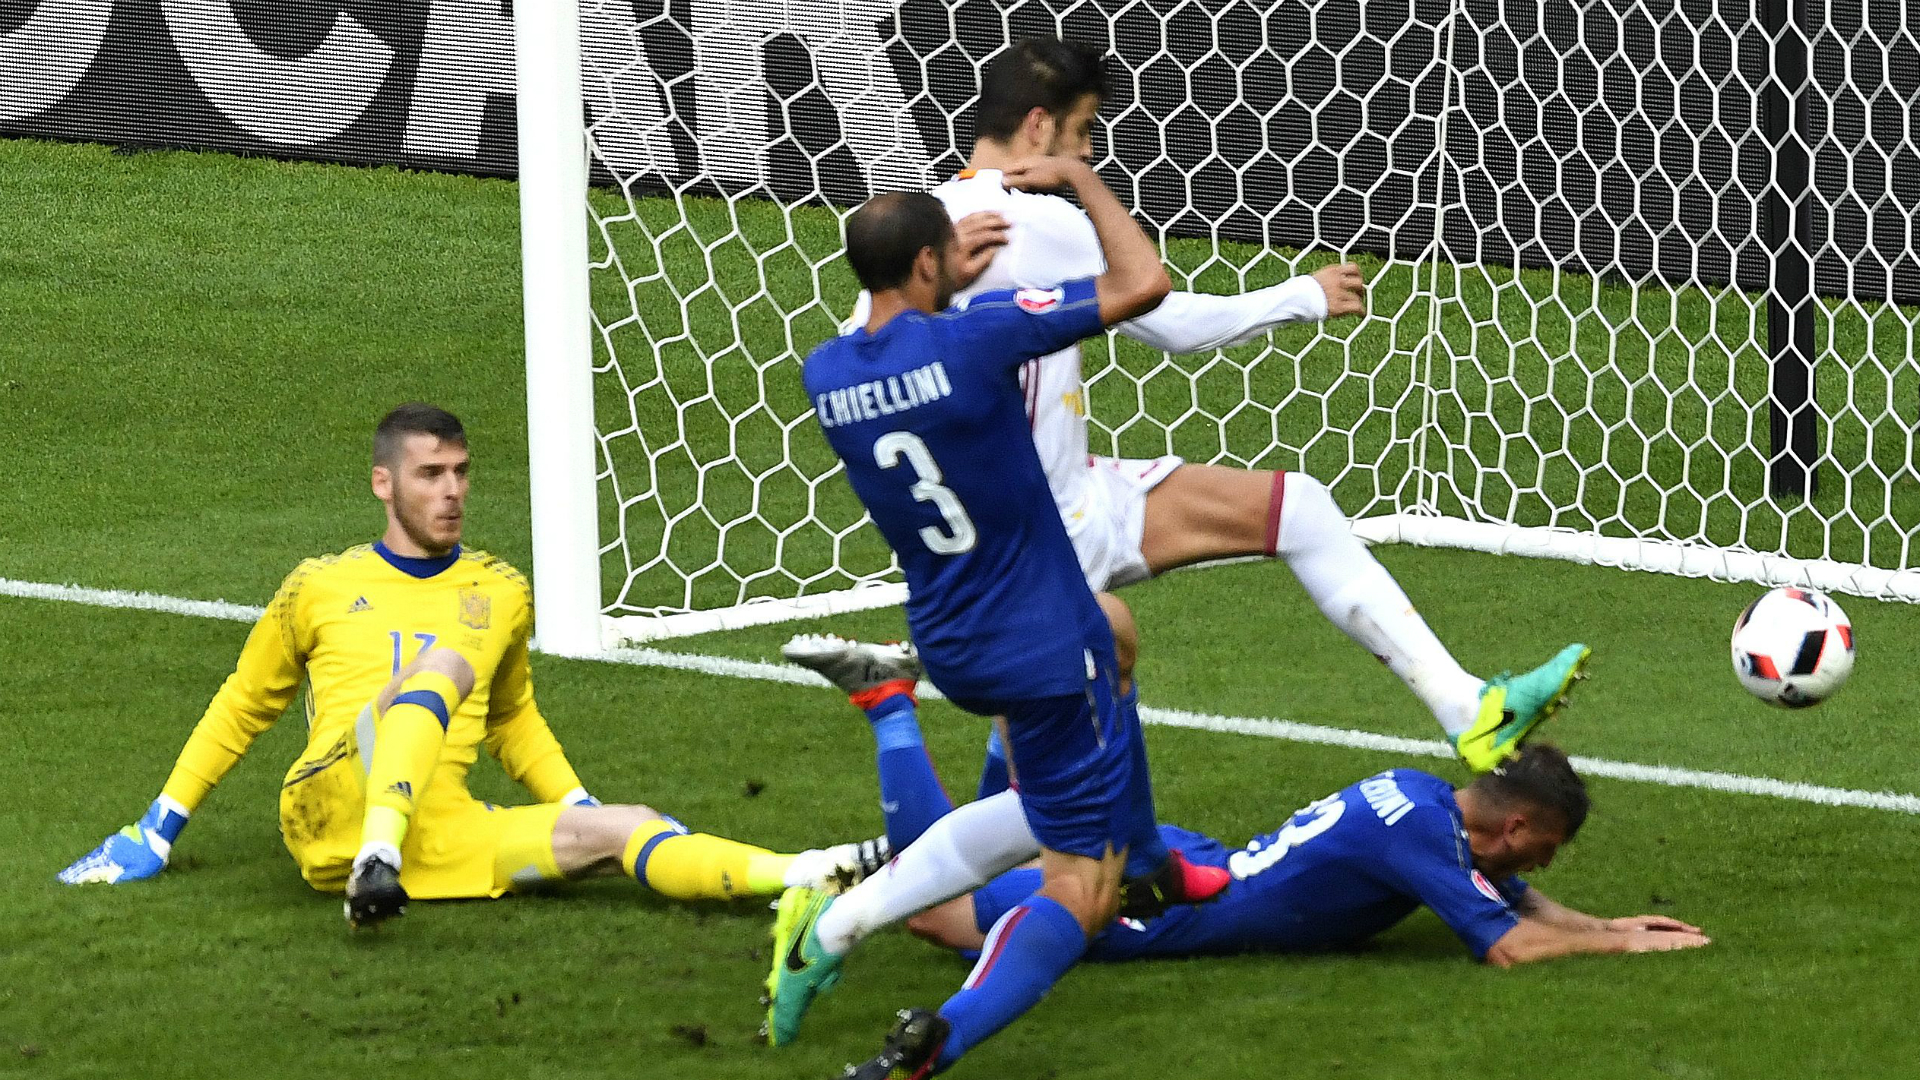 David de Gea Giorgio Chiellini Italy Spain Euro 2016